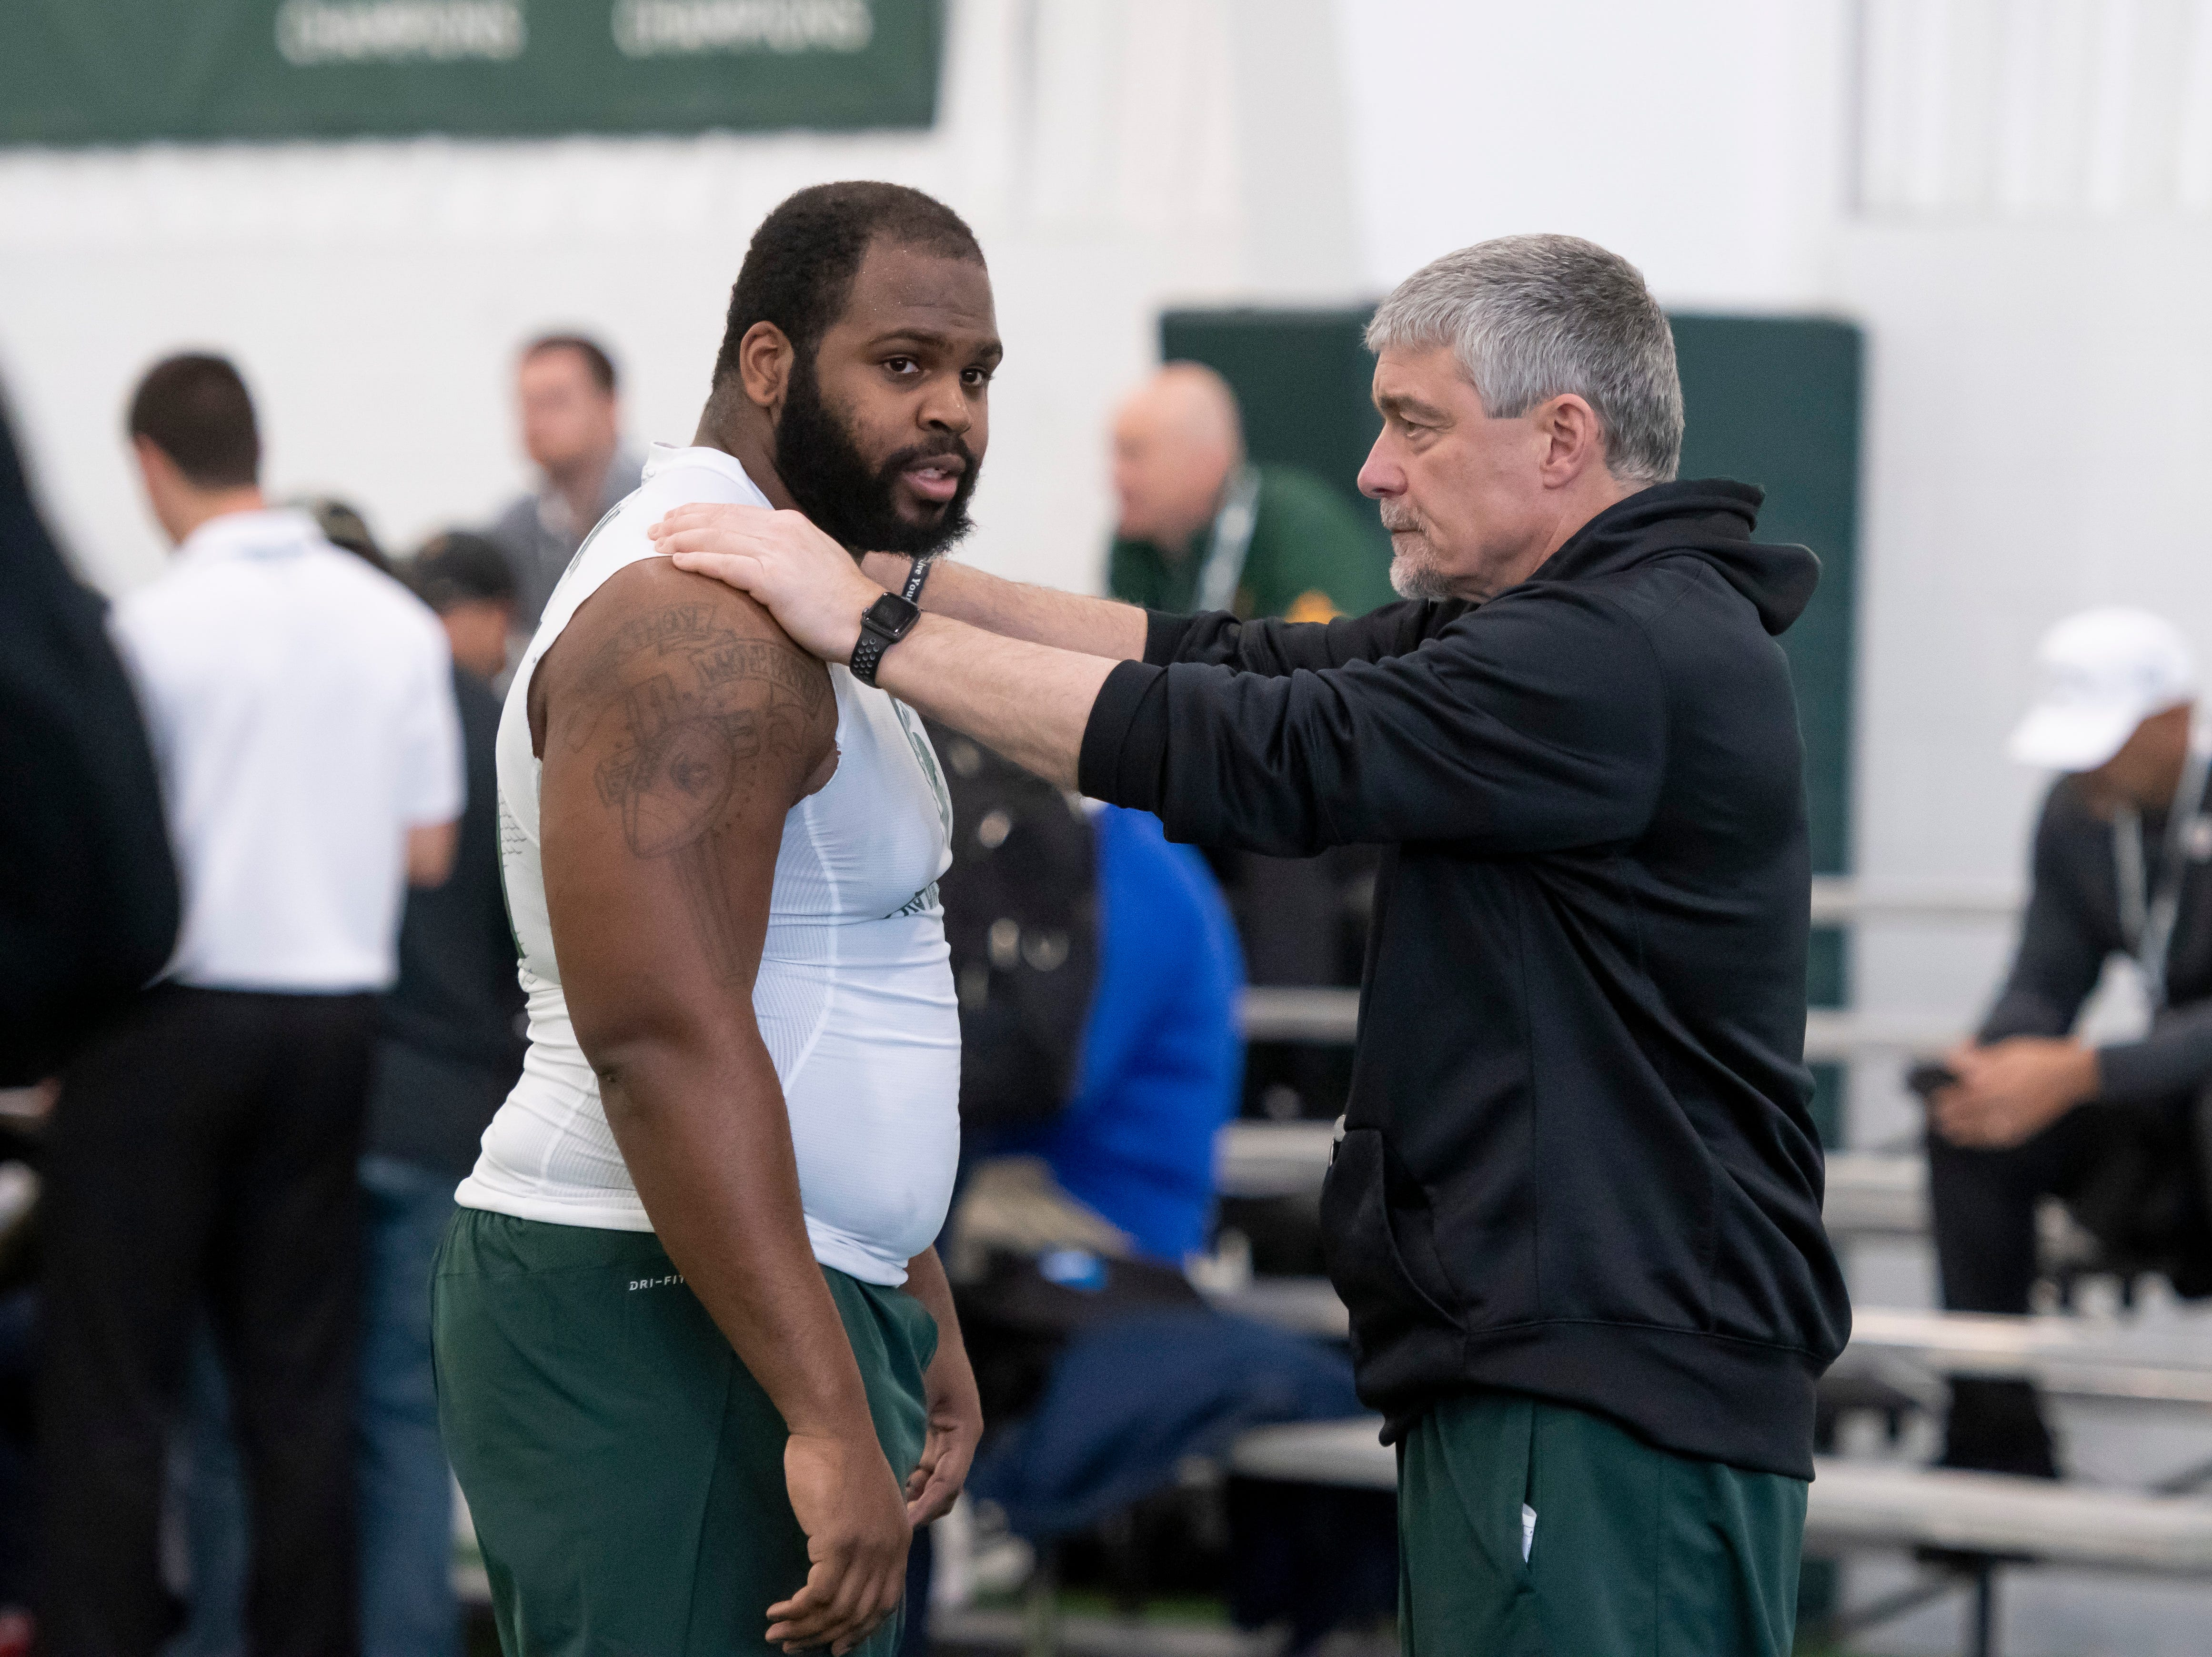 Michigan State head strength and conditioning coach Ken Mannie, right, talks with defensive tackle Gerald Owens during an NFL pro day.